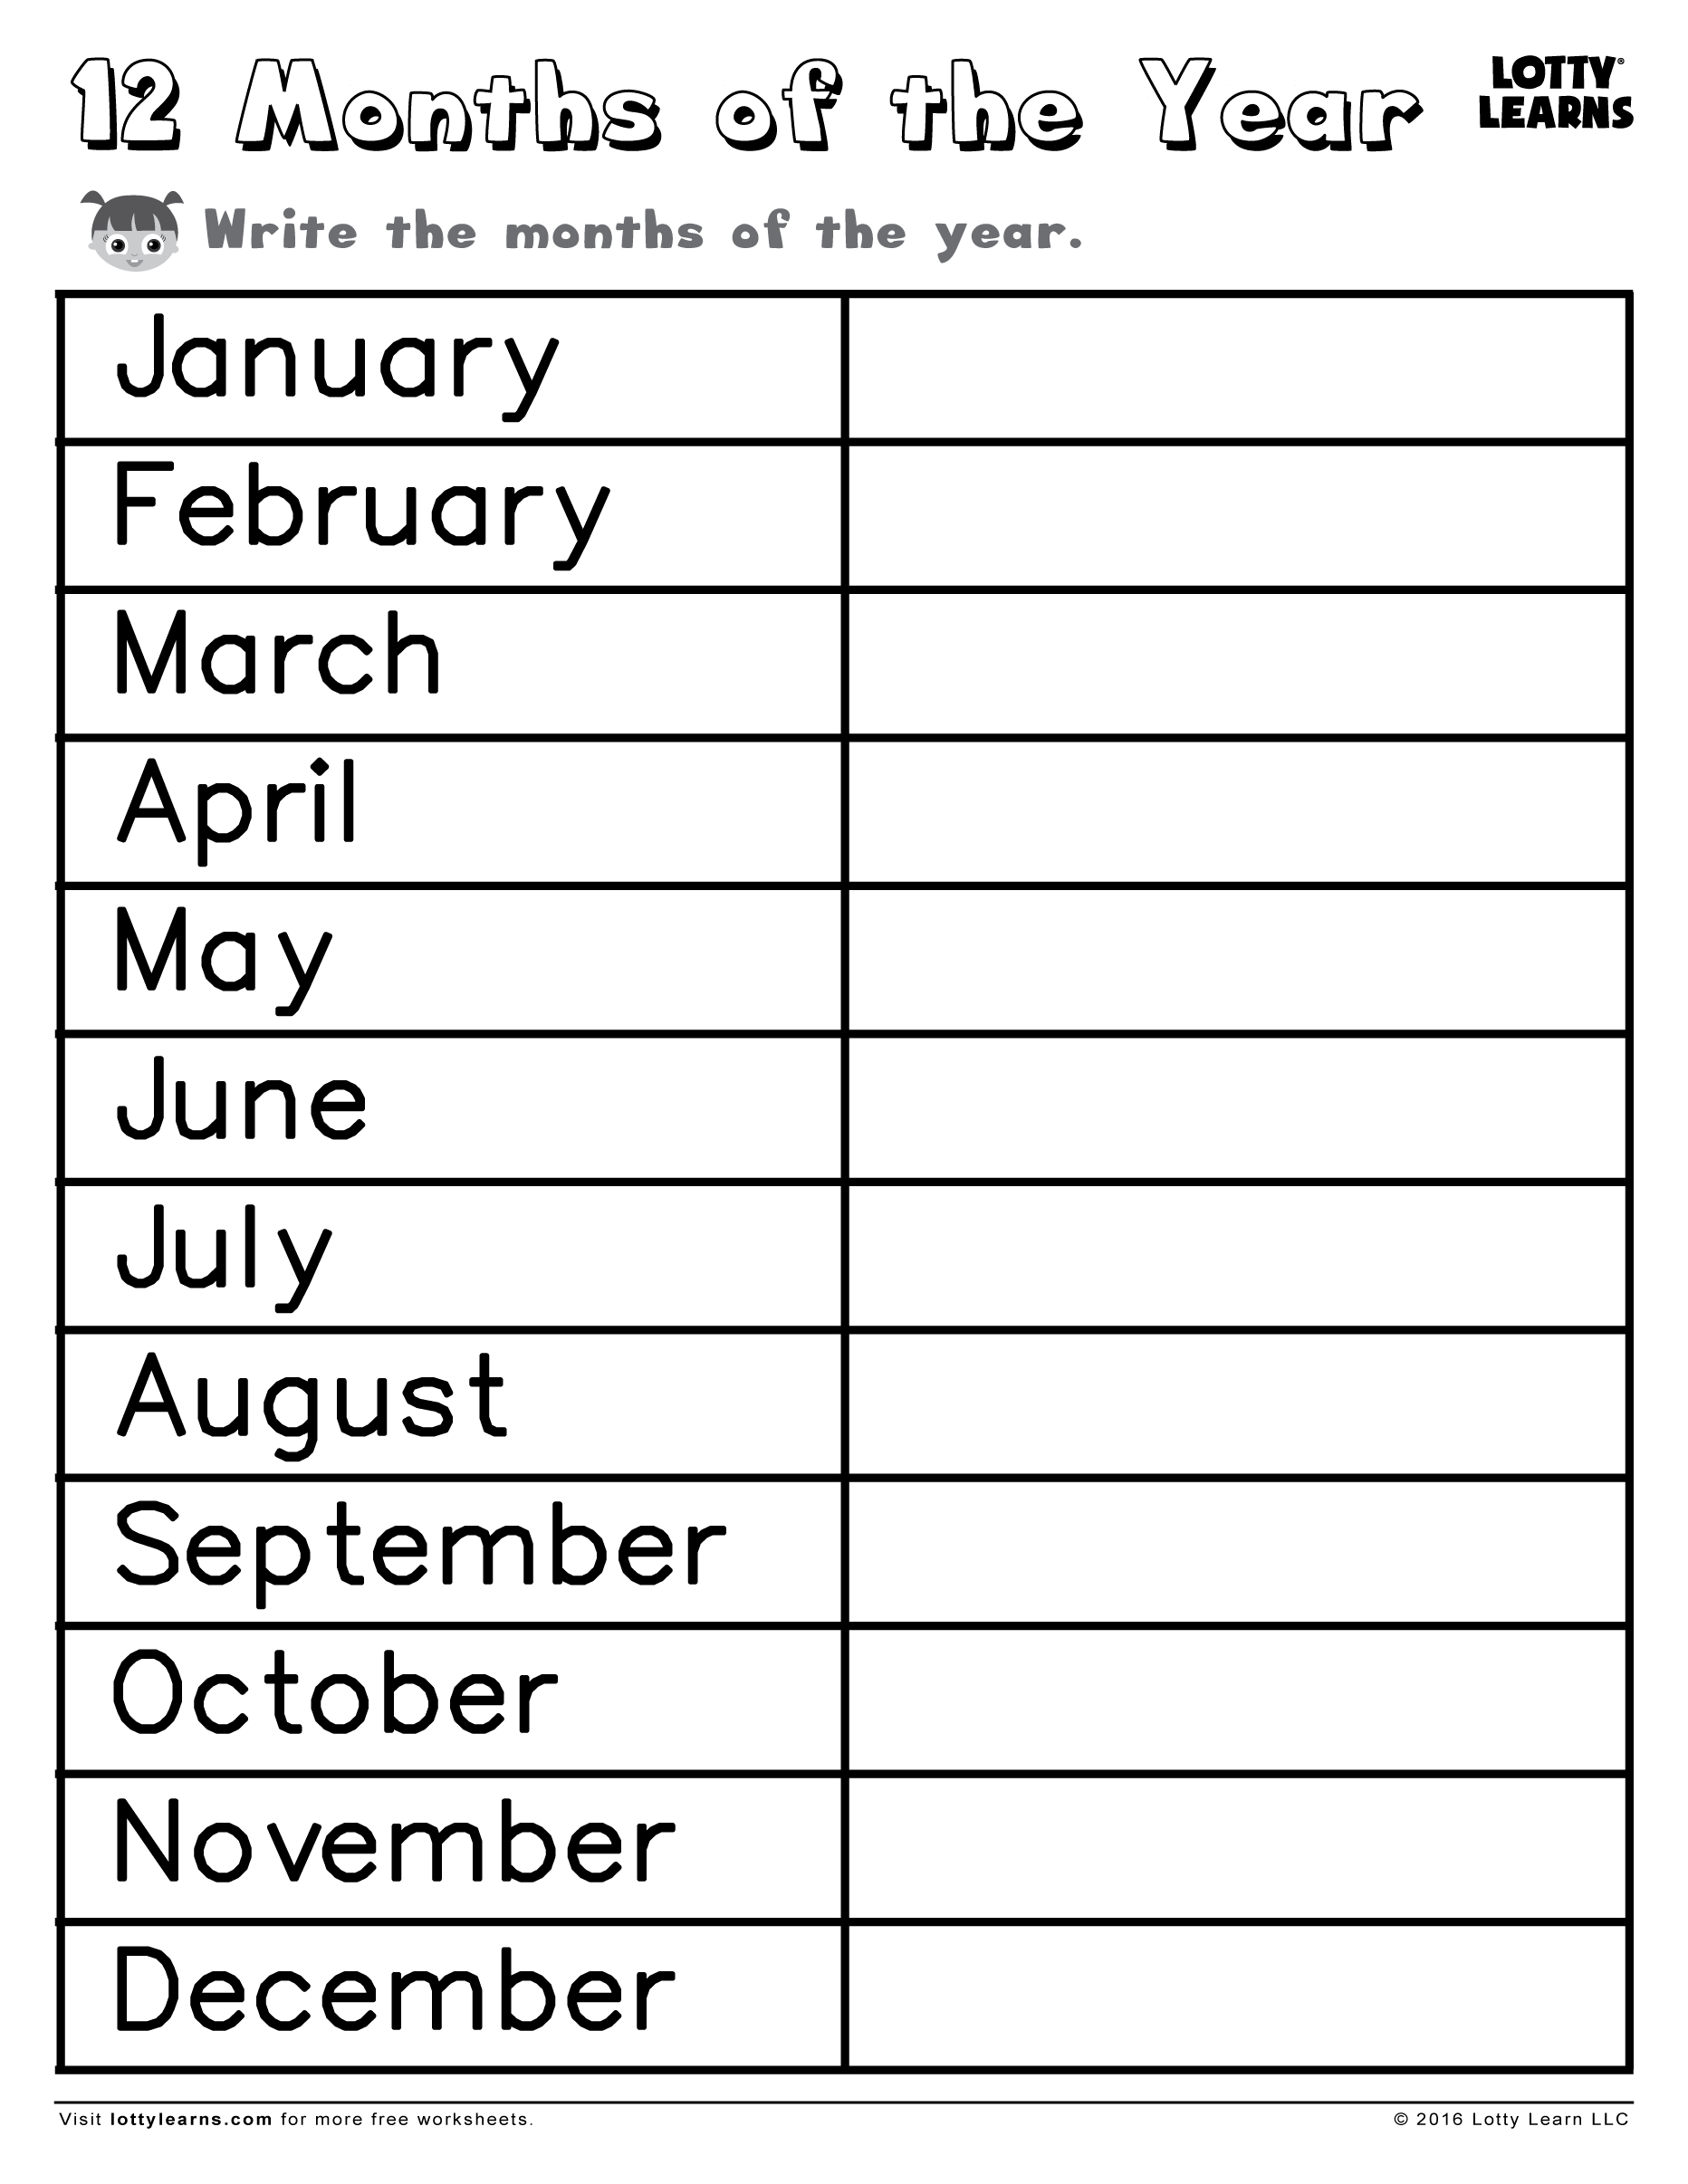 Worksheets Months Of The Year Worksheets 12 months of the year lotty learns download